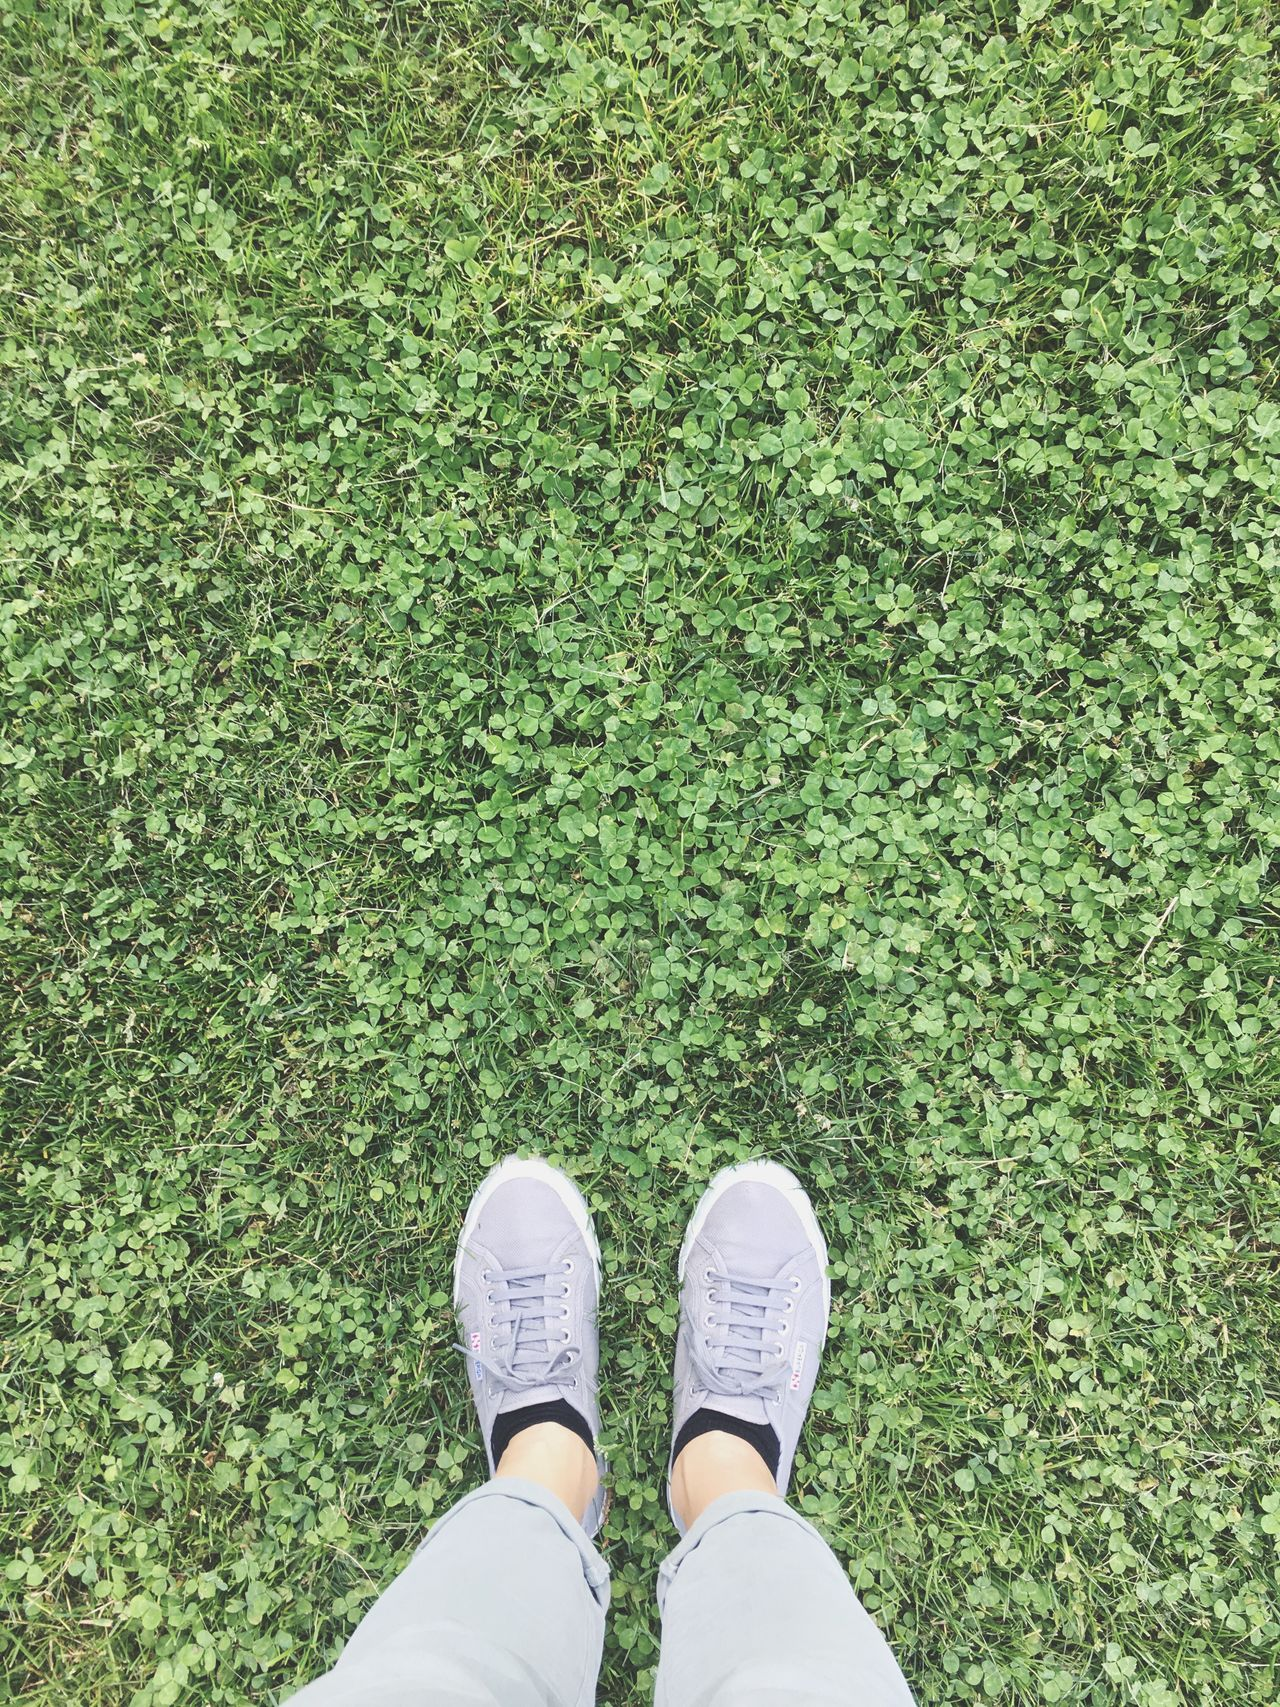 Live For The Story Place Of Heart Grass Standing Shoe Out Of The Box